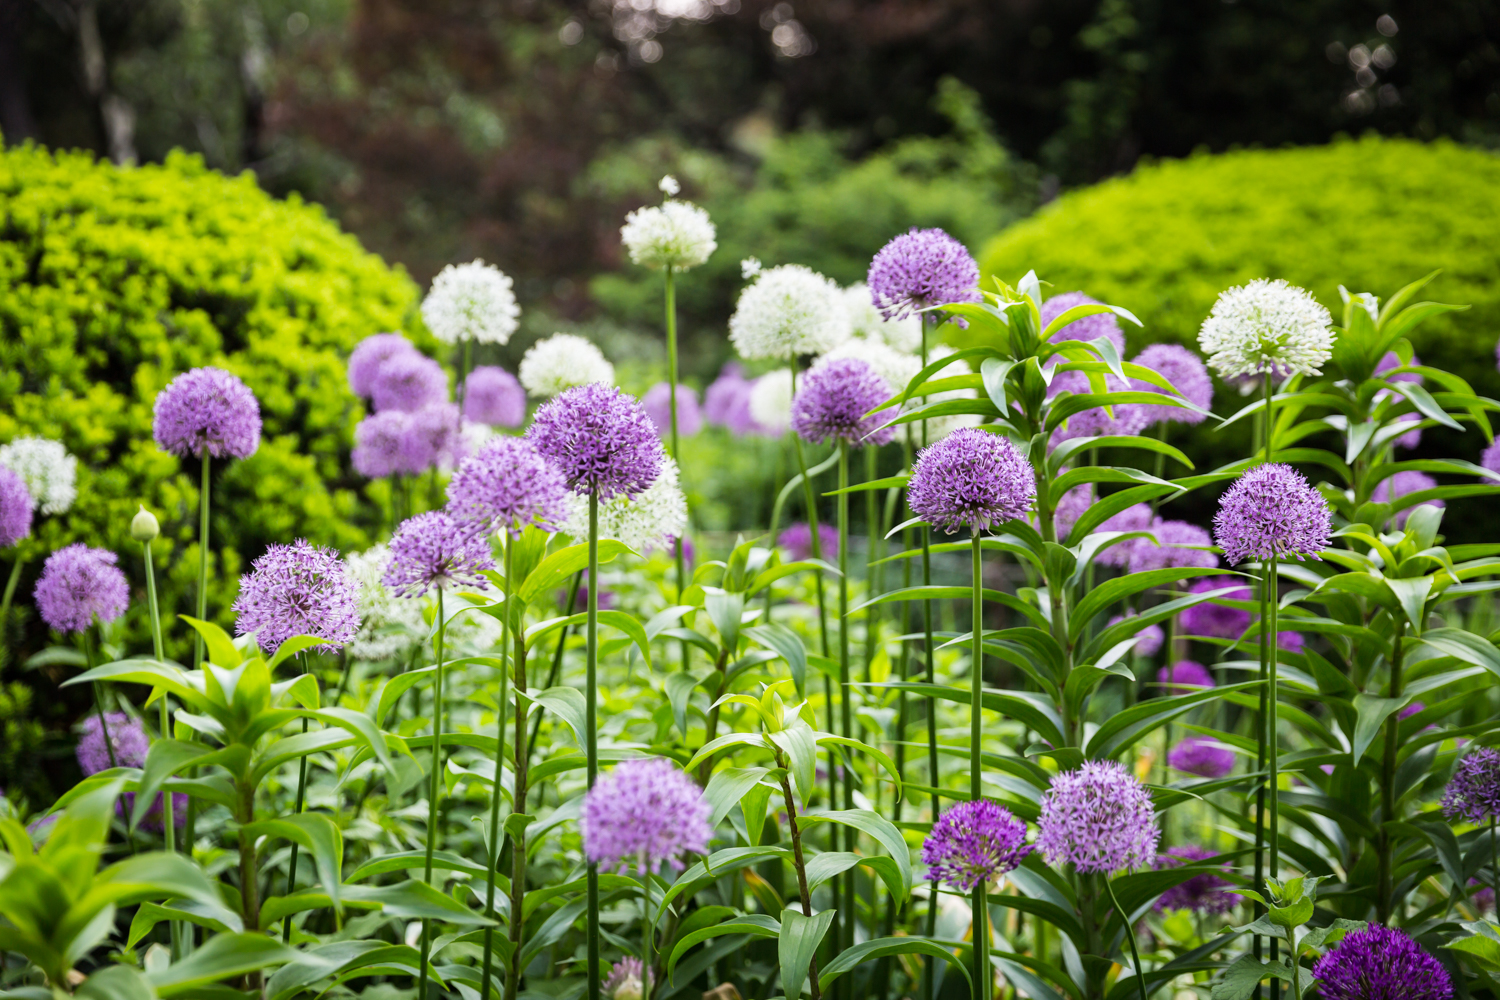 Purple and white flowers in Central Park Shakespeare Garden